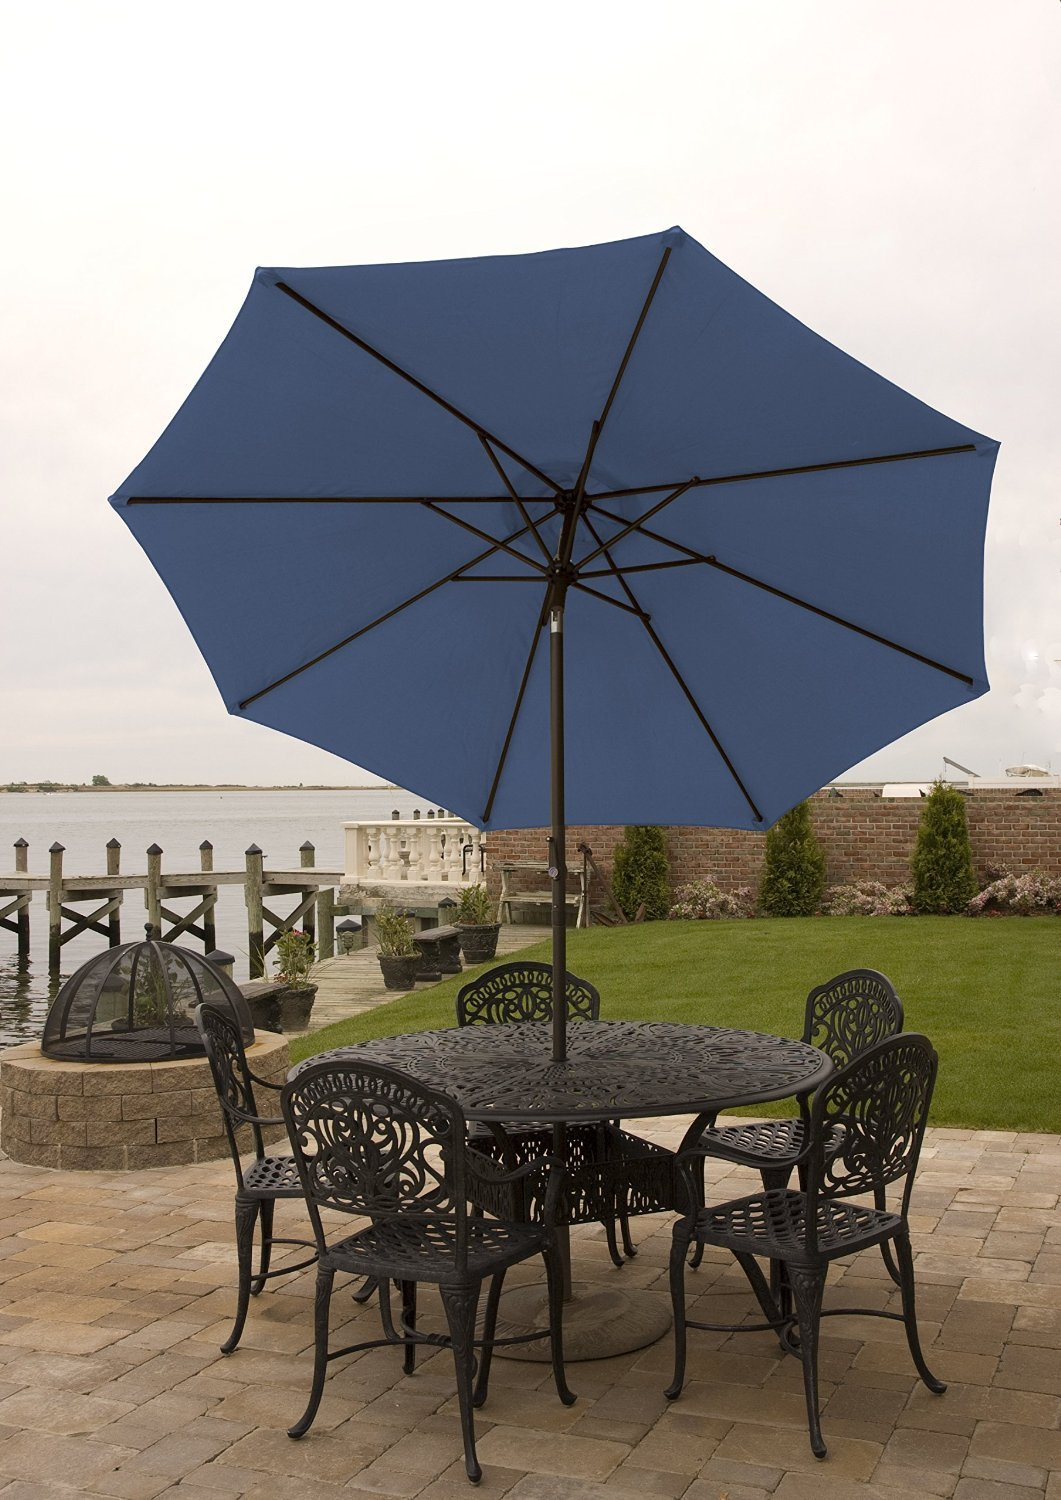 Superior Amazon.com : Patio Umbrella For Table 9 Ft With Aluminum Frame, Crank U0026 Tilt  For Shade In Various Colors Easy Opening And Closing Water Resistant ...